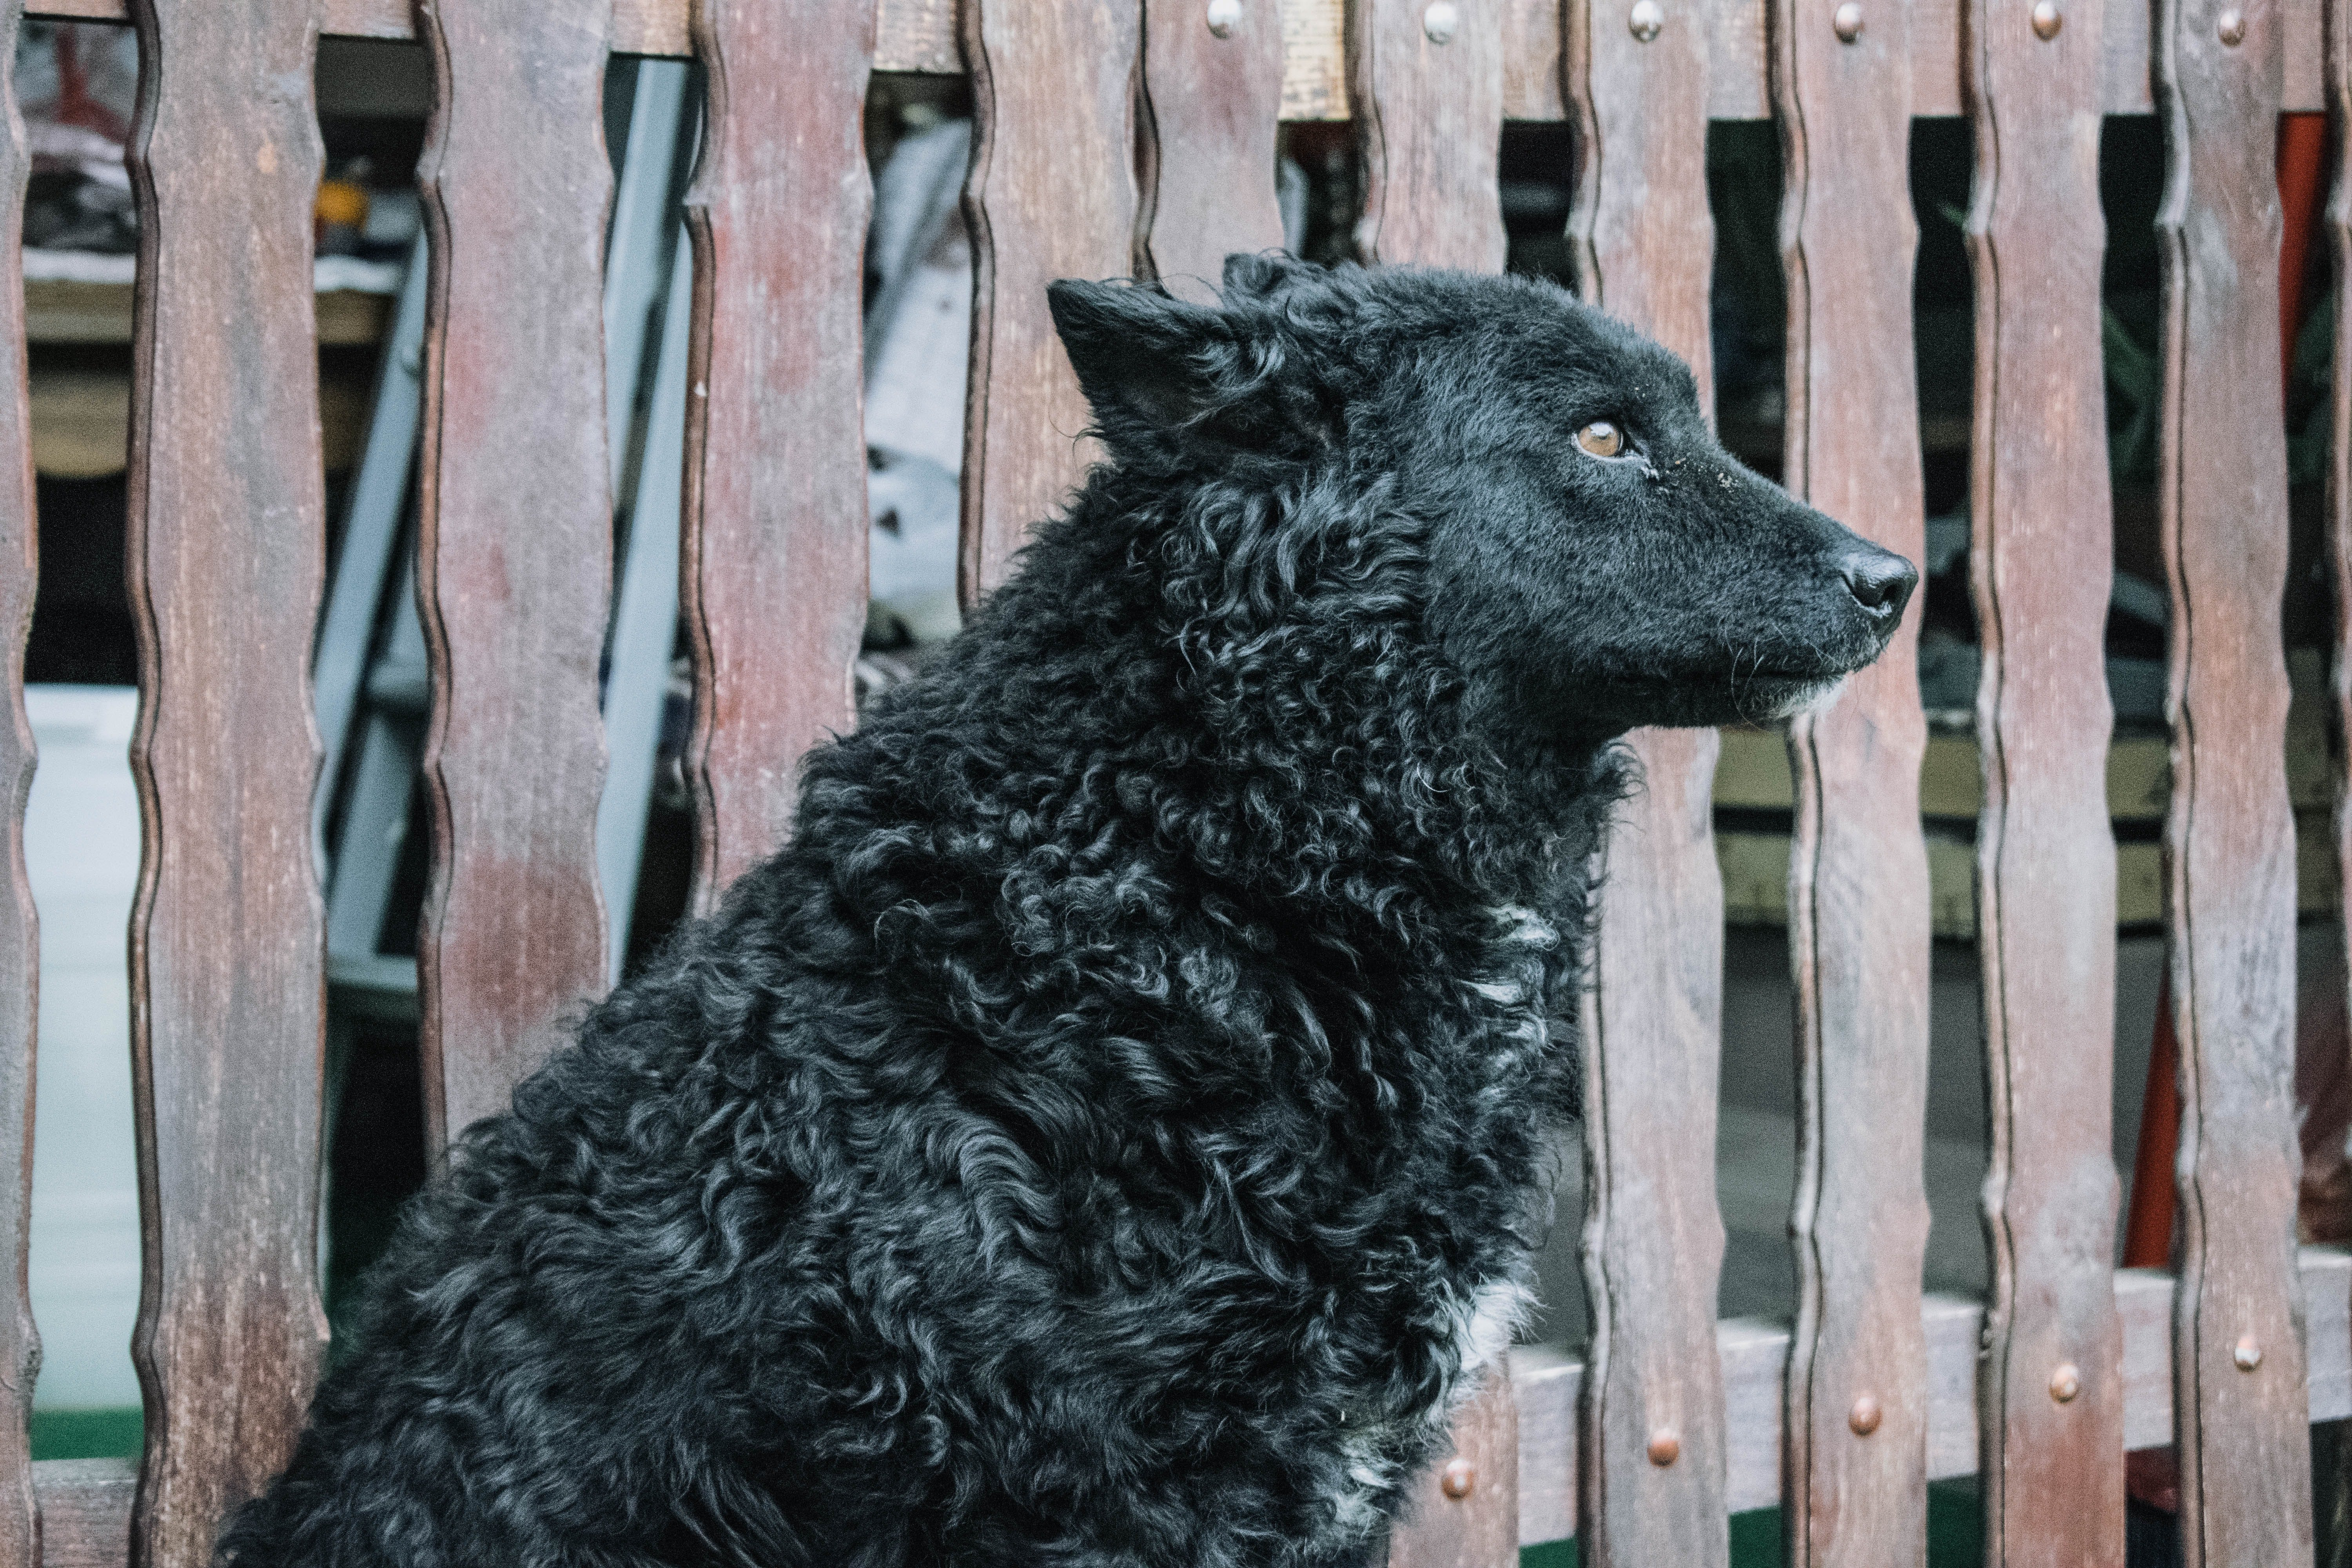 A black, curly-haired dog looks into the distance sadly.